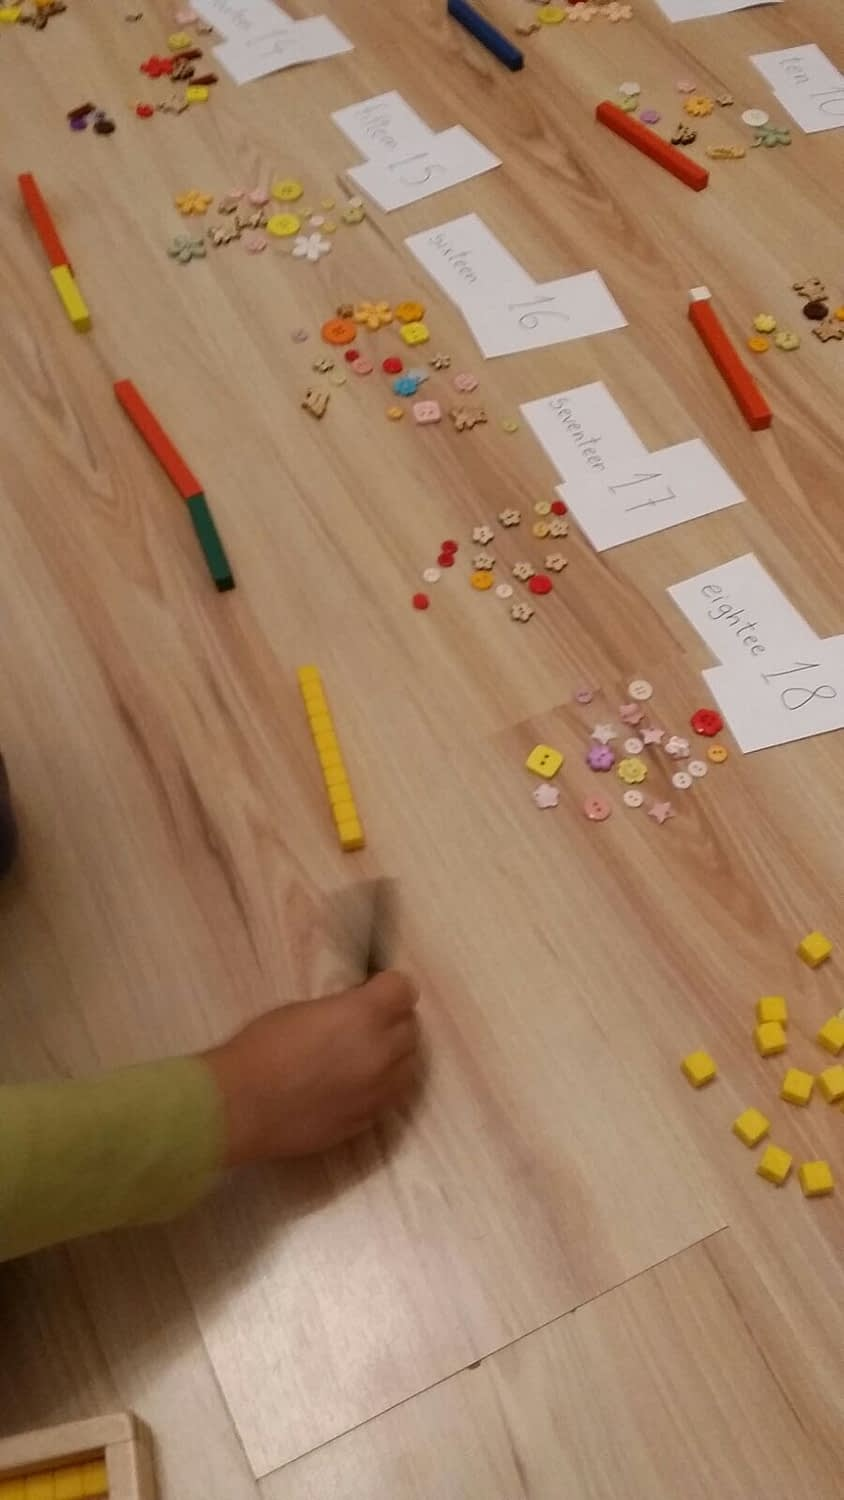 Counting with cuisenaire and singapore math